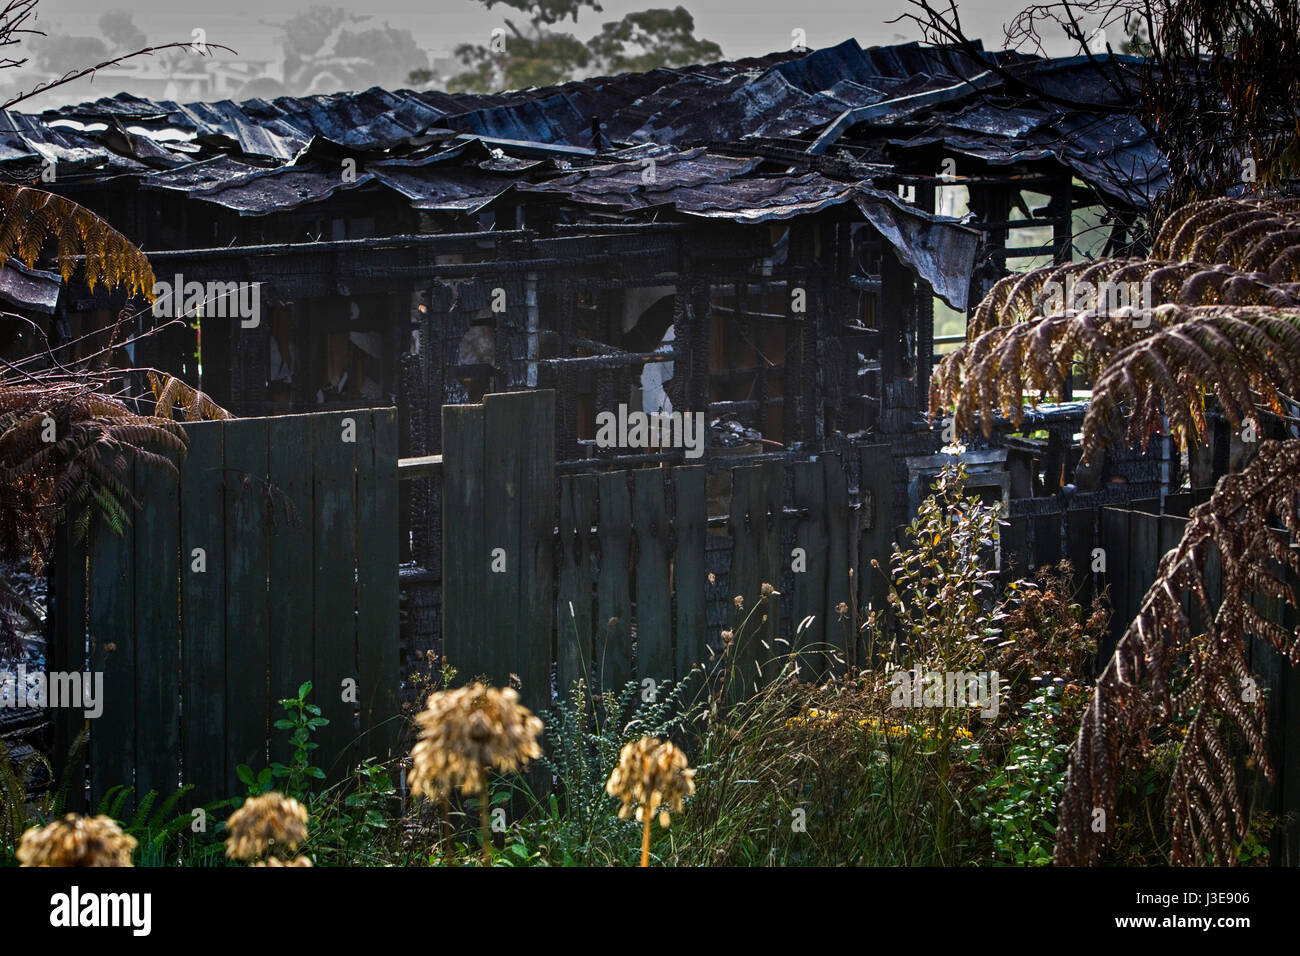 Scene of house fire - Stock Image